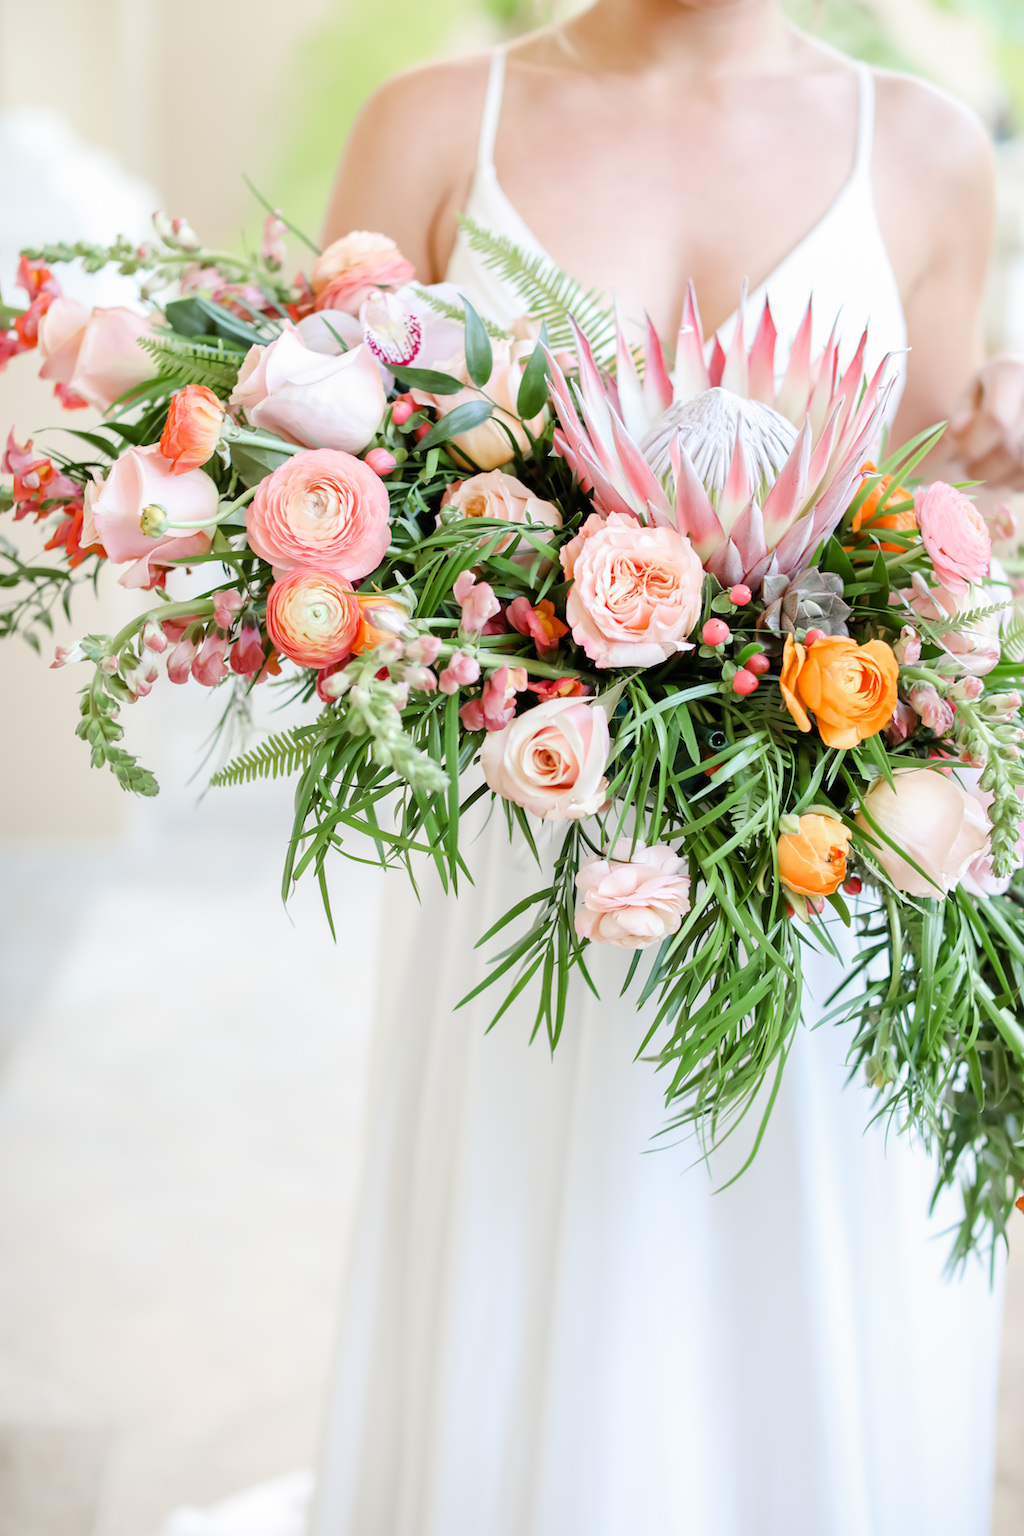 Tropical Inspired, Garden Crescent Style Wedding Bouquet with Pink King Protea, Peach, White and Orange Florals with Greenery  Tampa Bay Wedding Photographer Lifelong Photography Studios